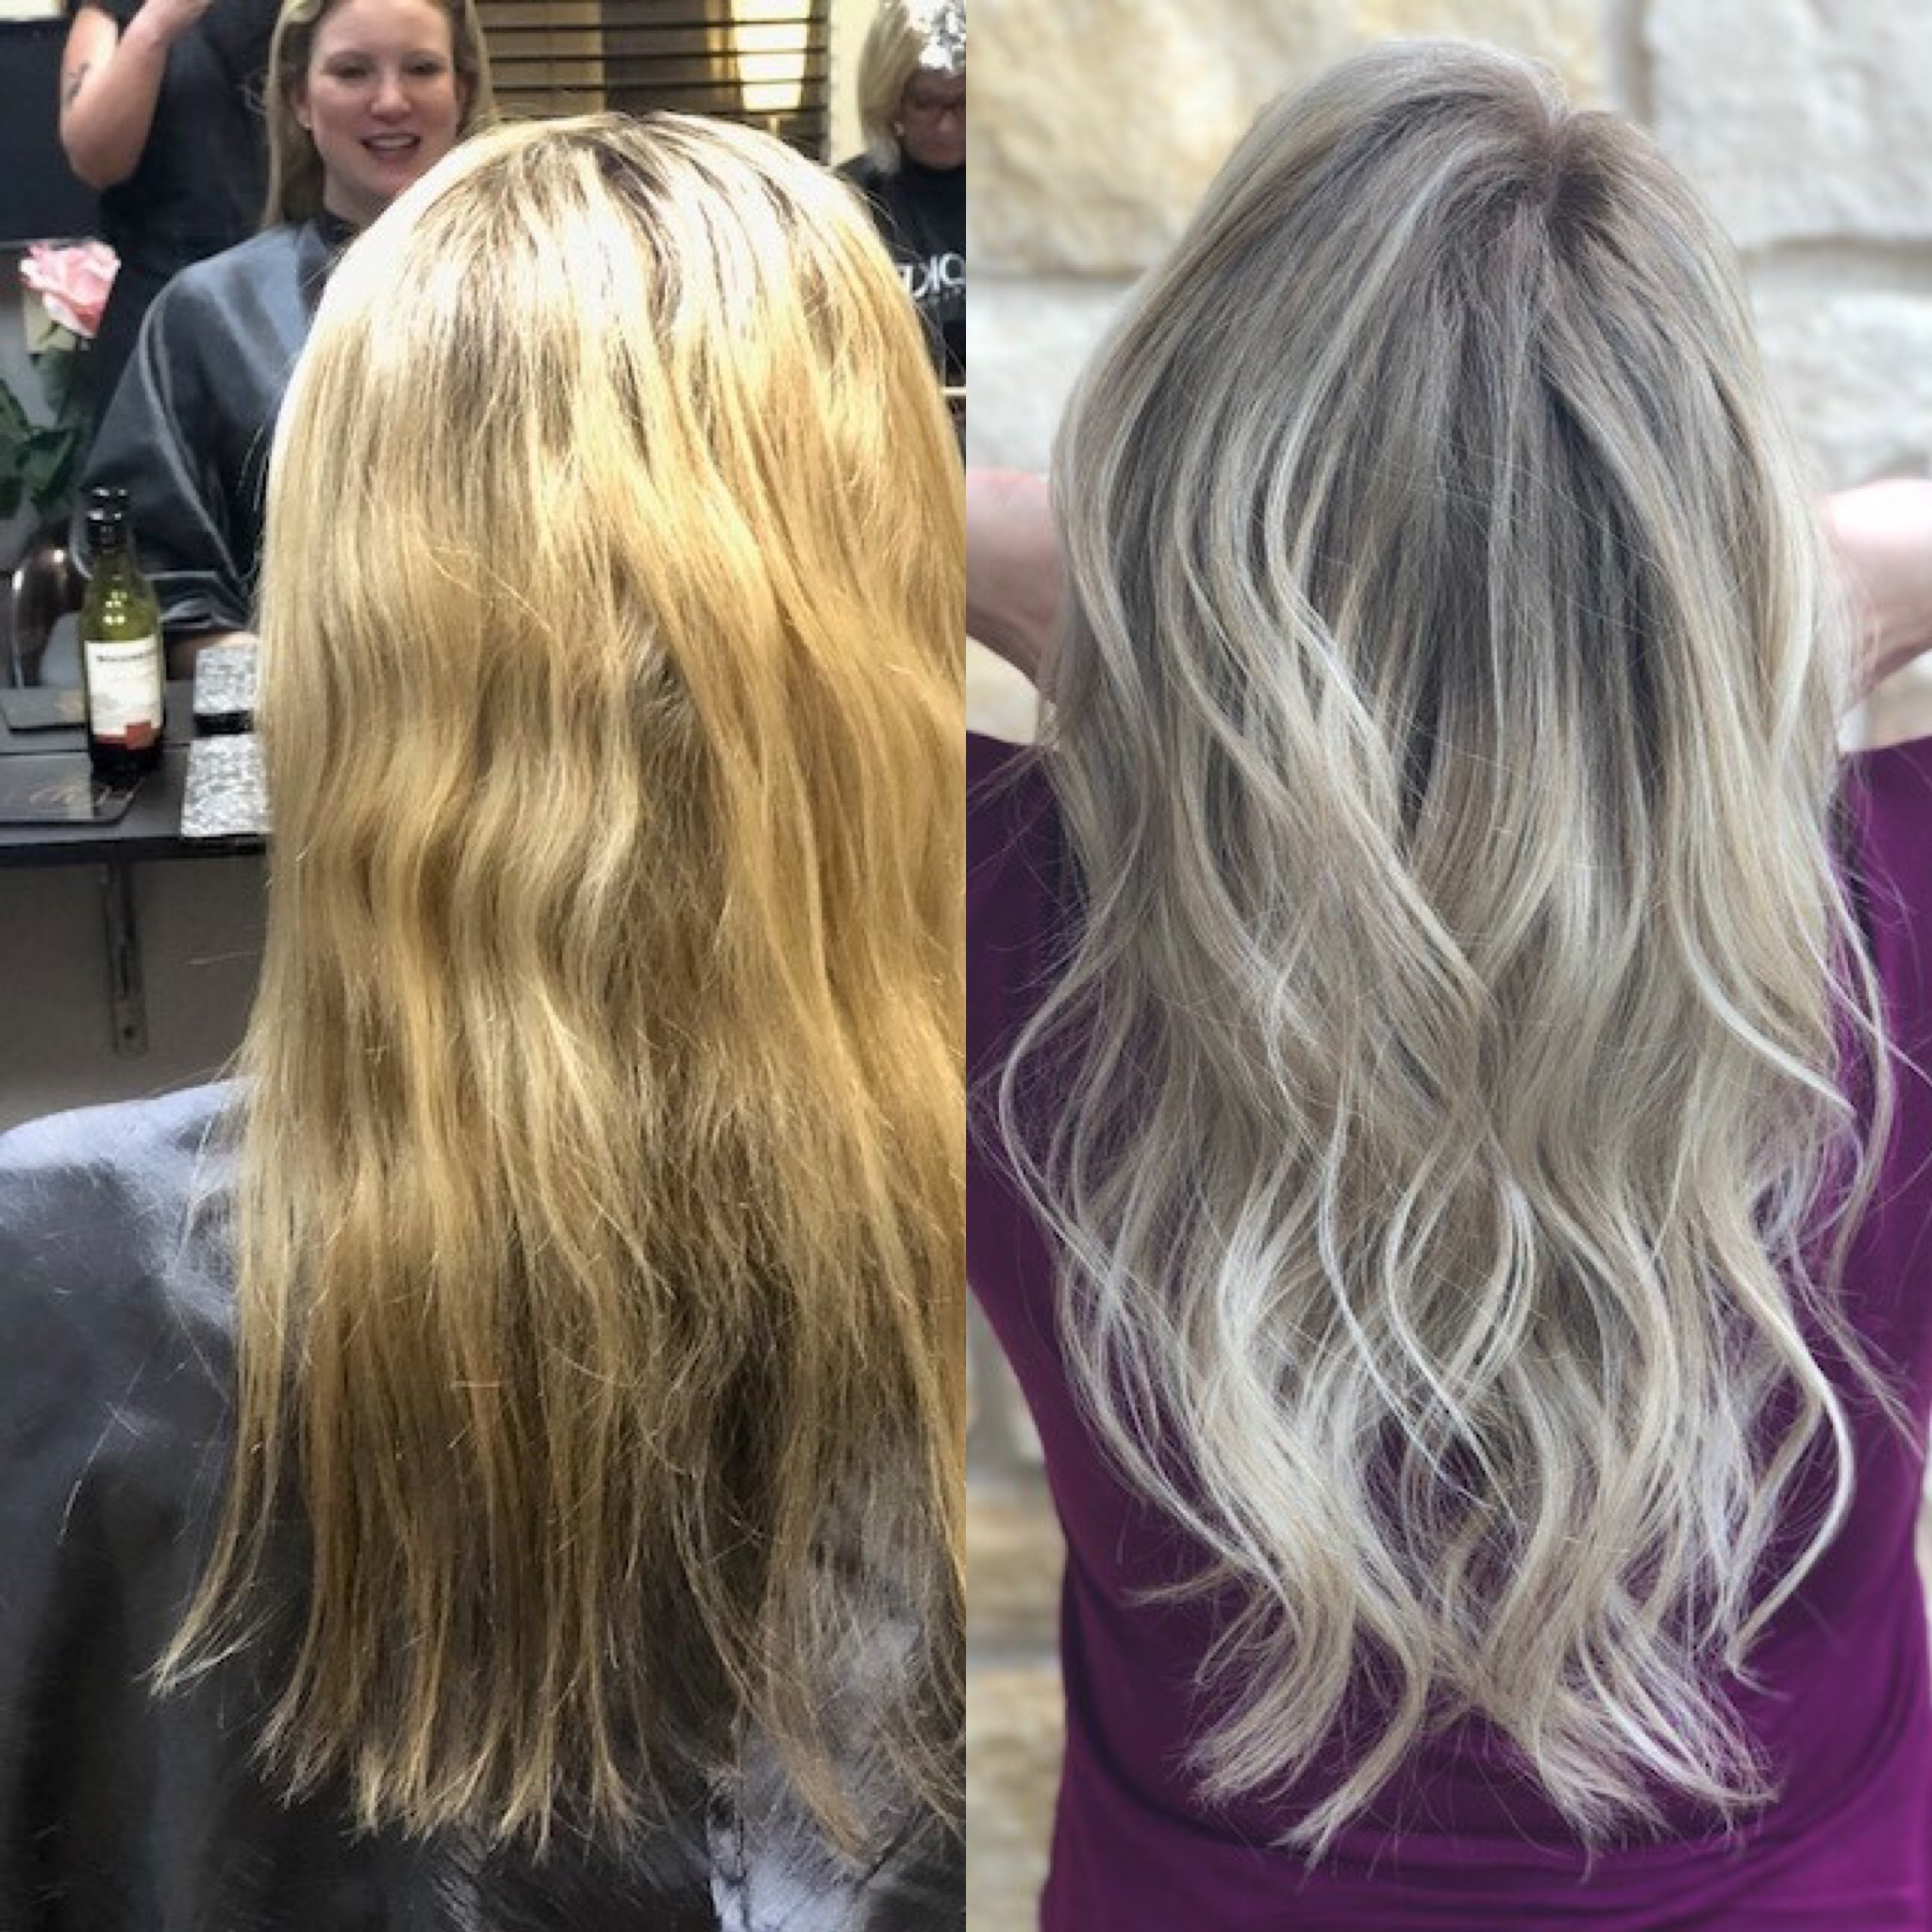 Adding Depth to Highlighted Hair with Balayage